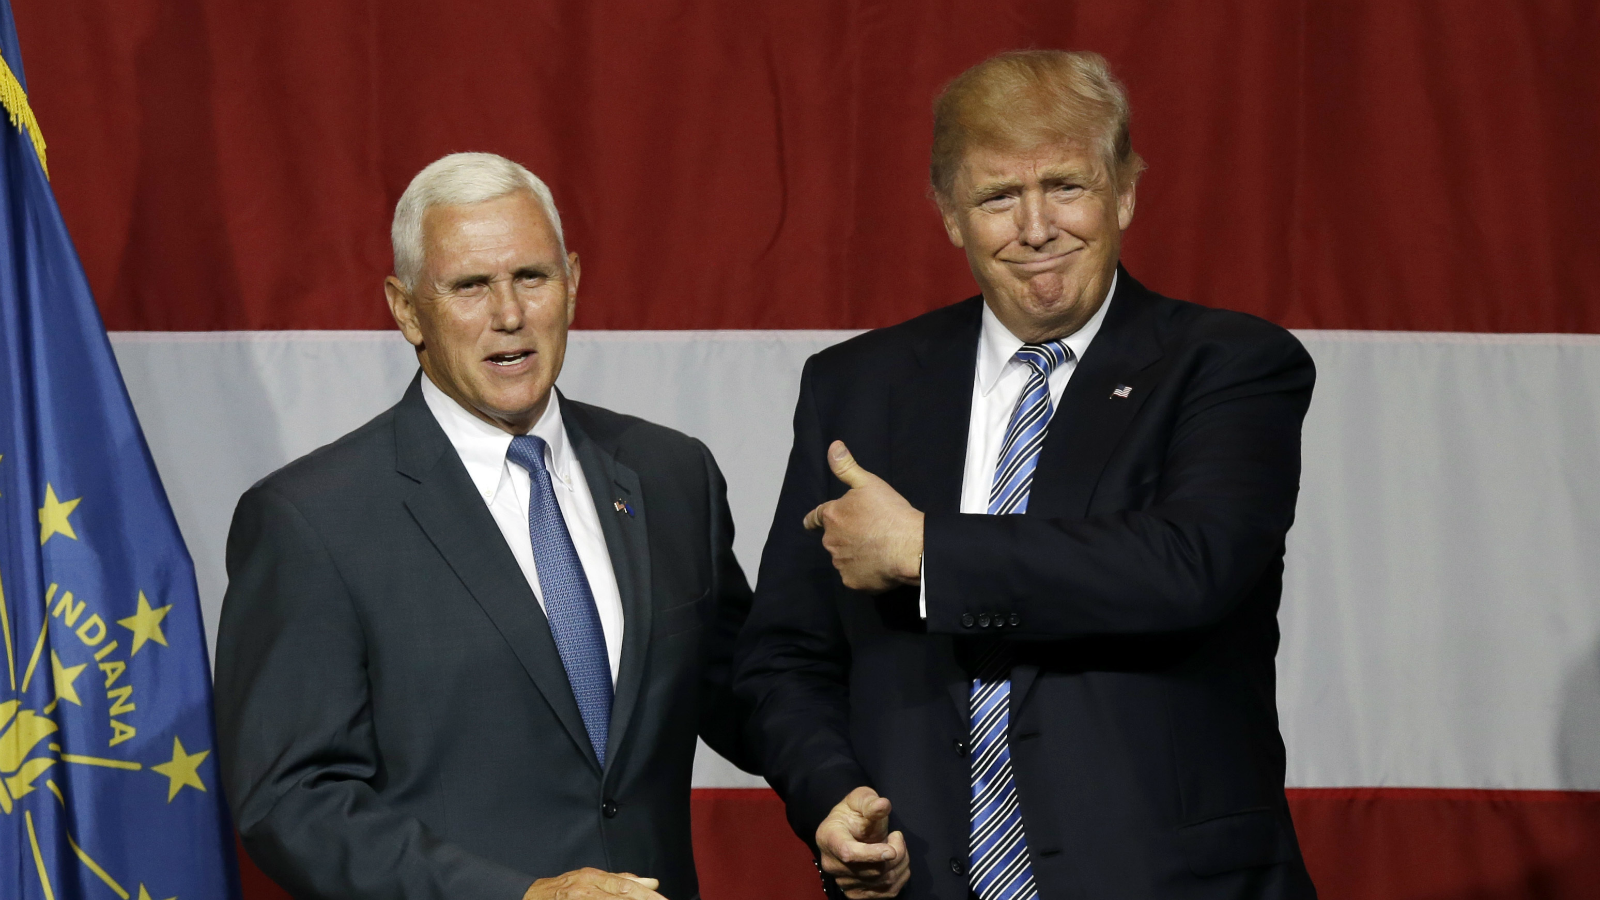 Mike Pence will be in Colorado Springs today